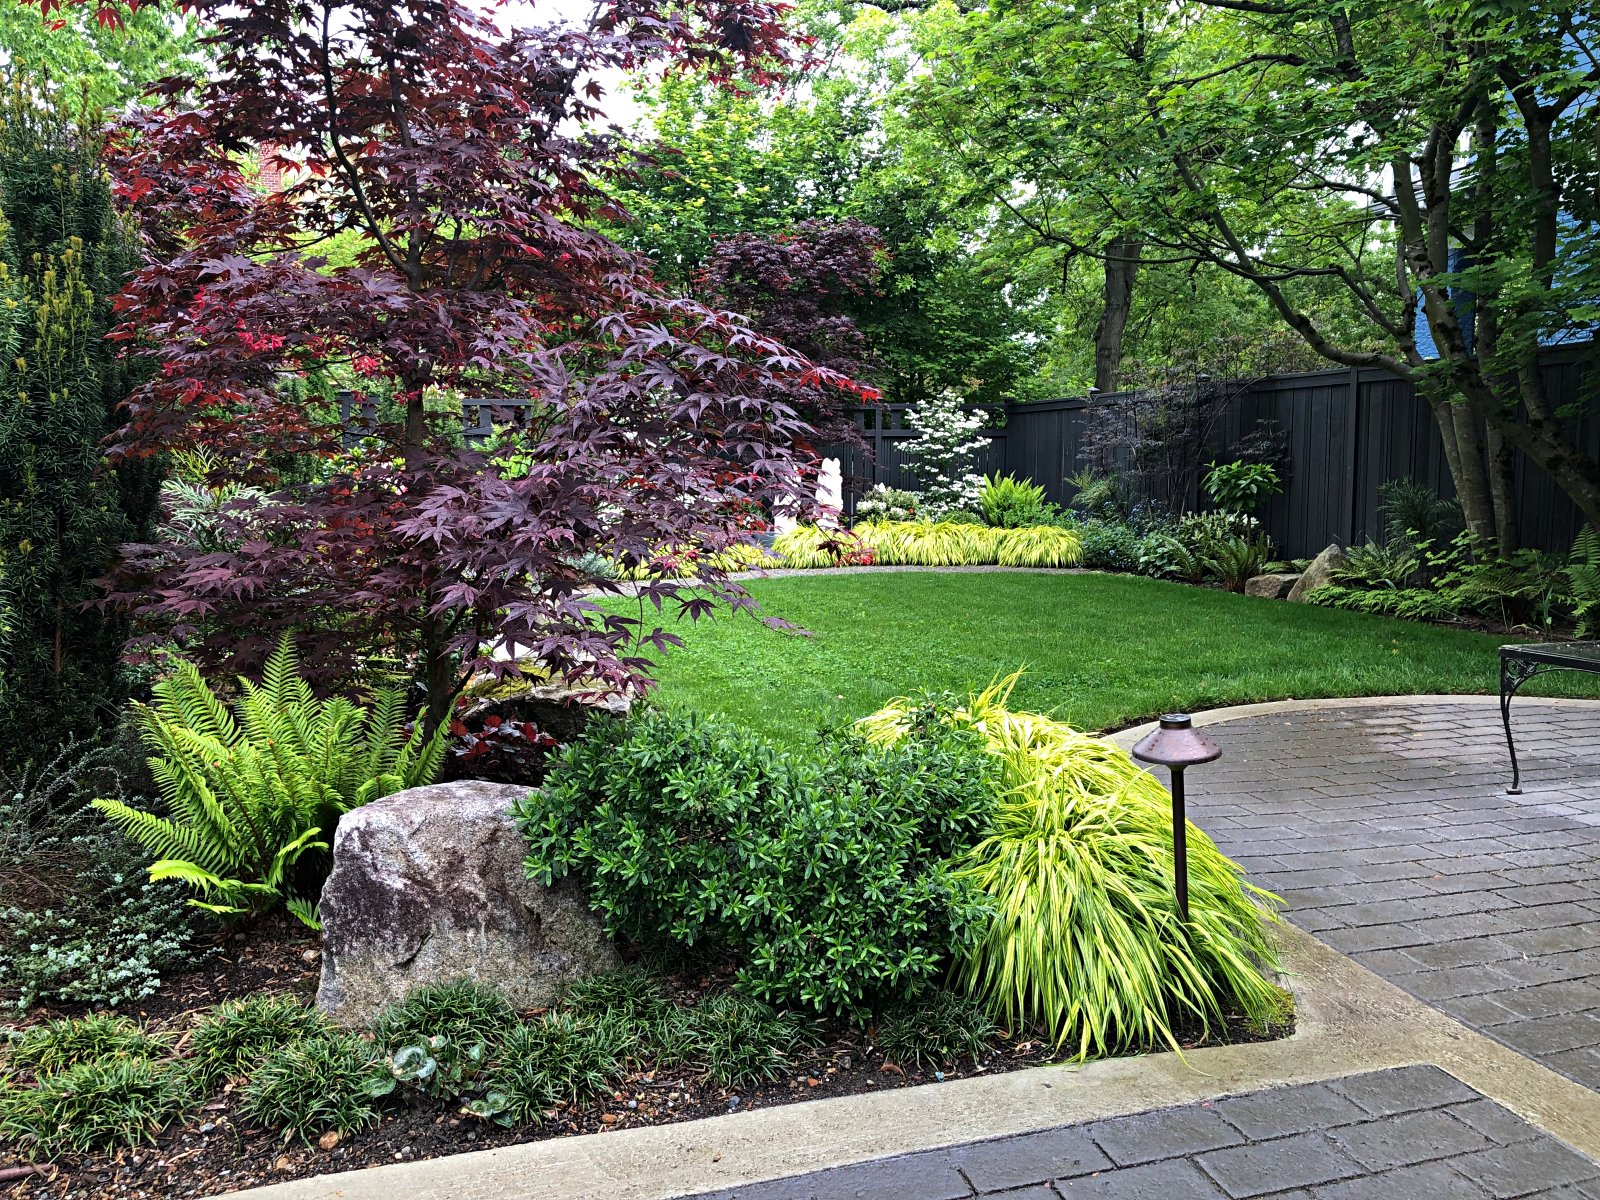 WOODLAND THEME IS CARRIED THROUGHOUT GARDEN TO CREATE CALM